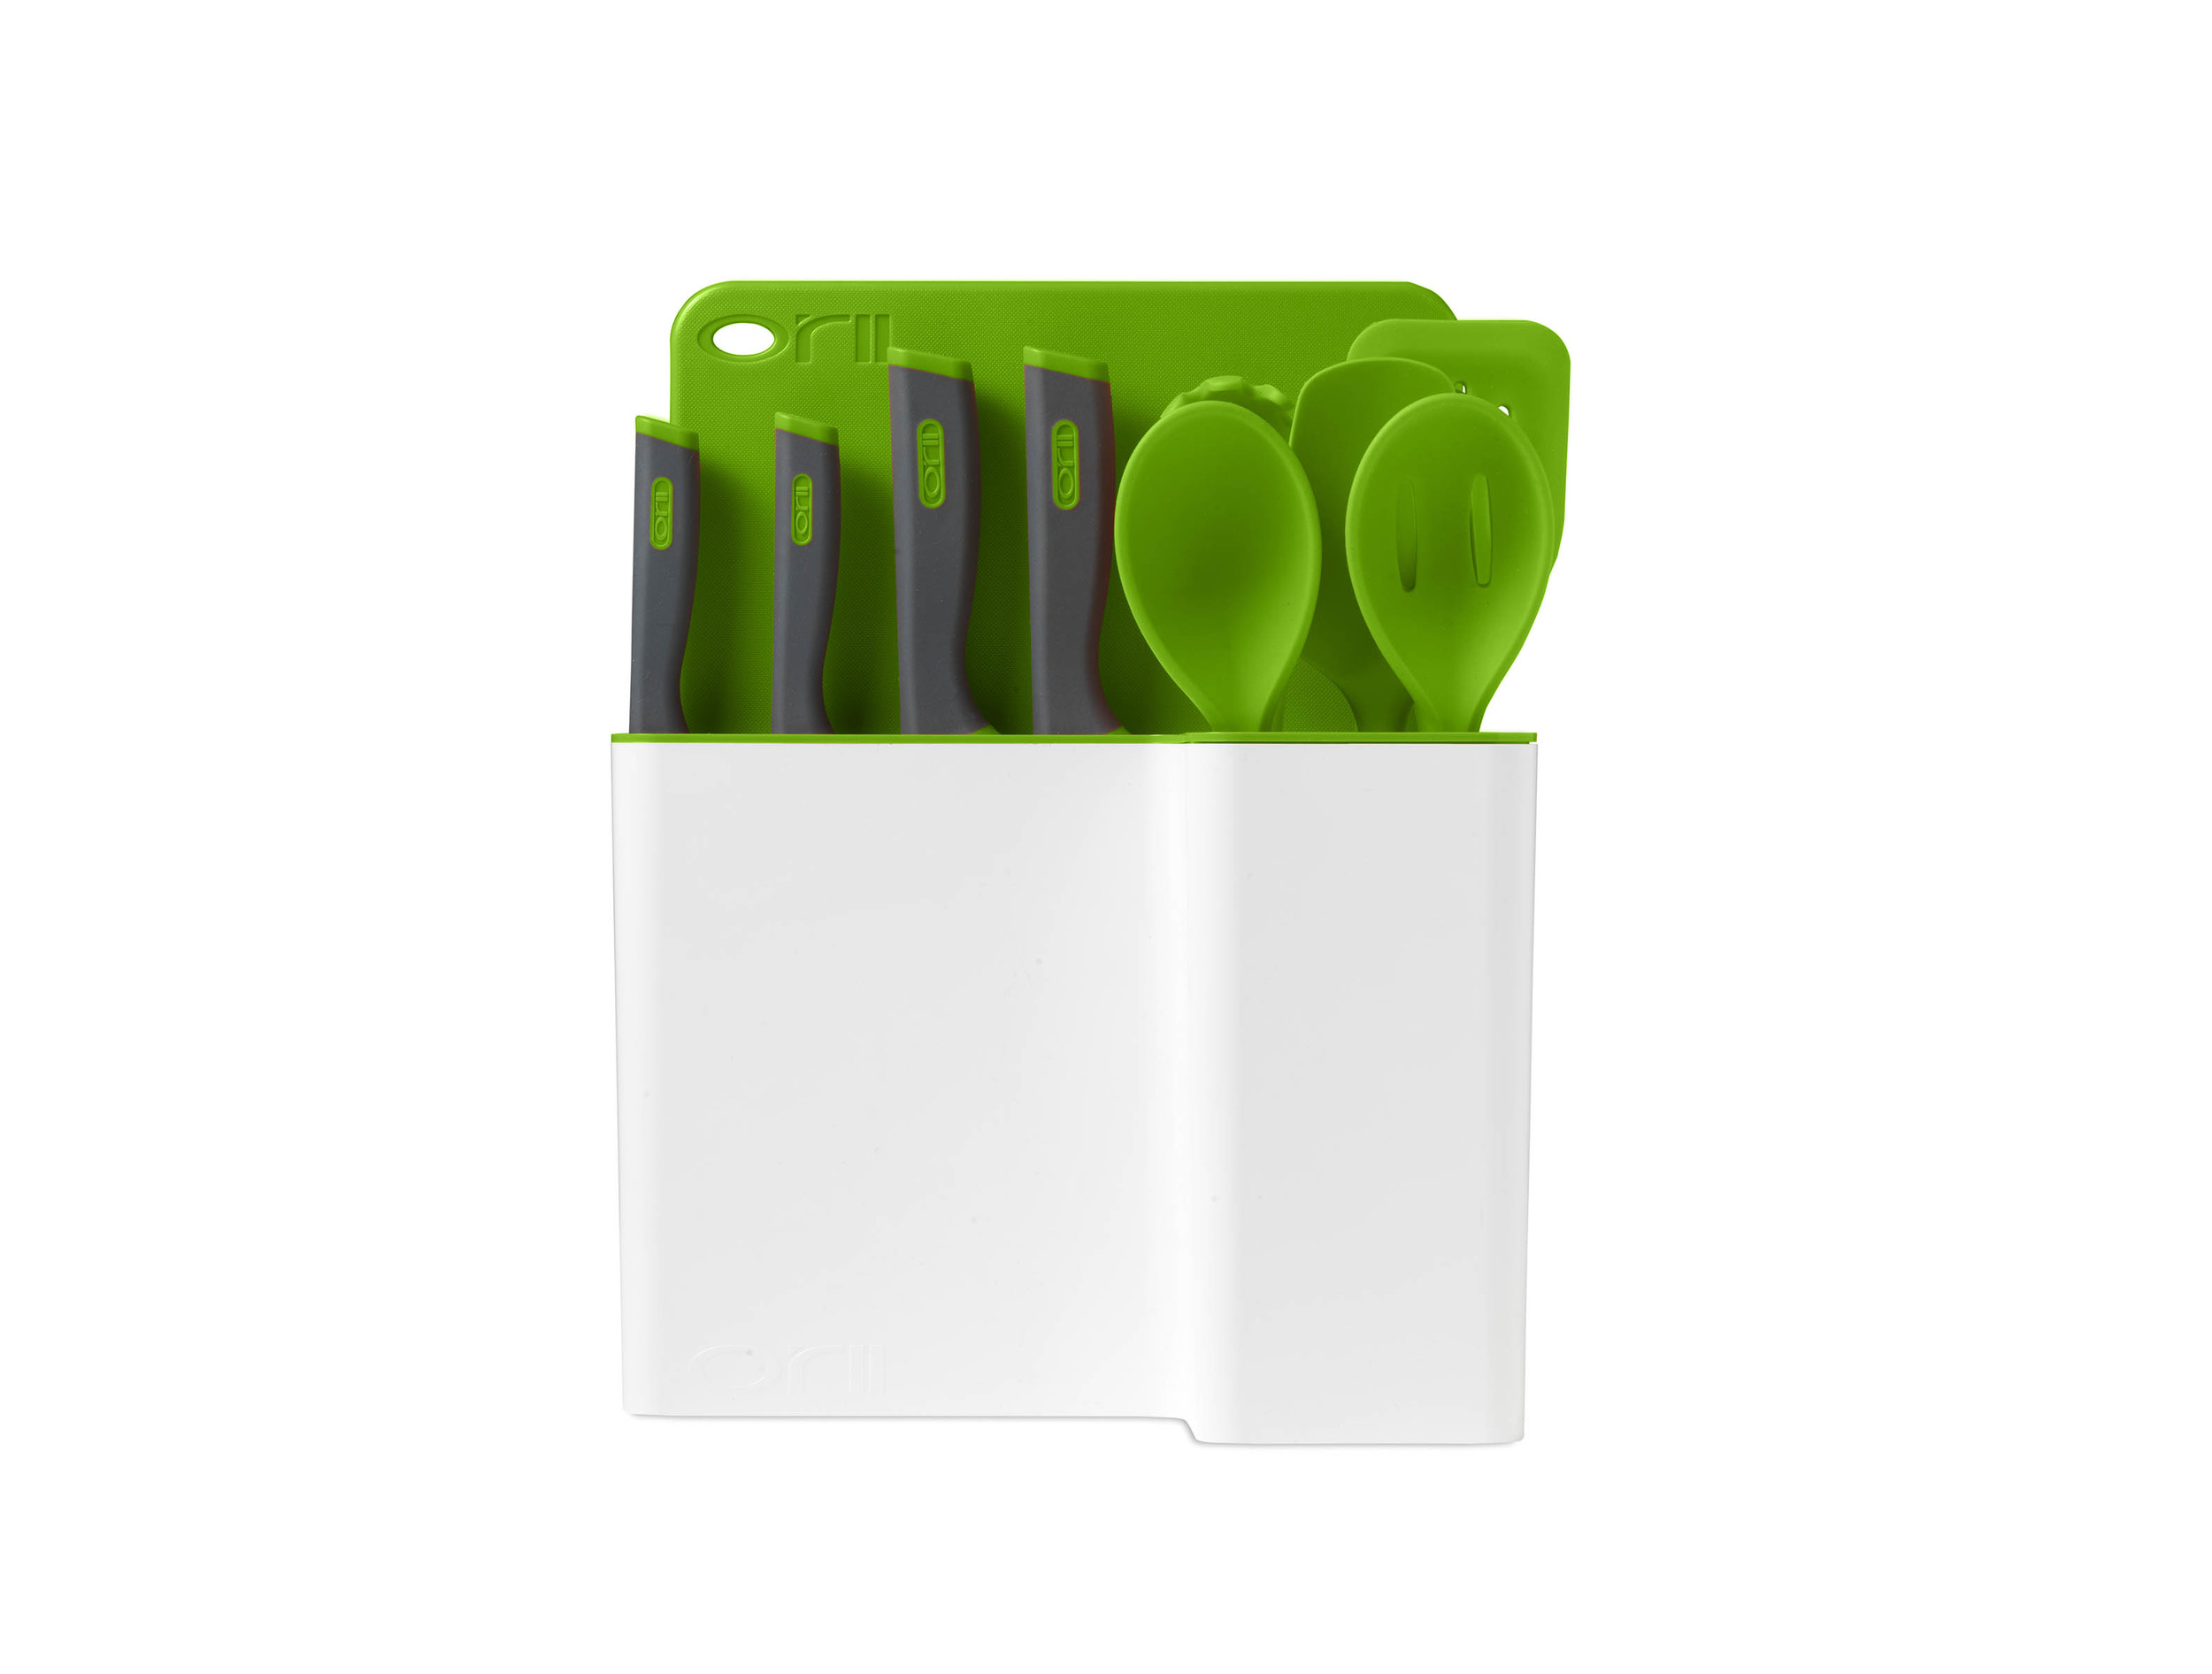 Orii 12PC MONO KITCHEN ORGANIZATION SET - VIBRANT GREEN